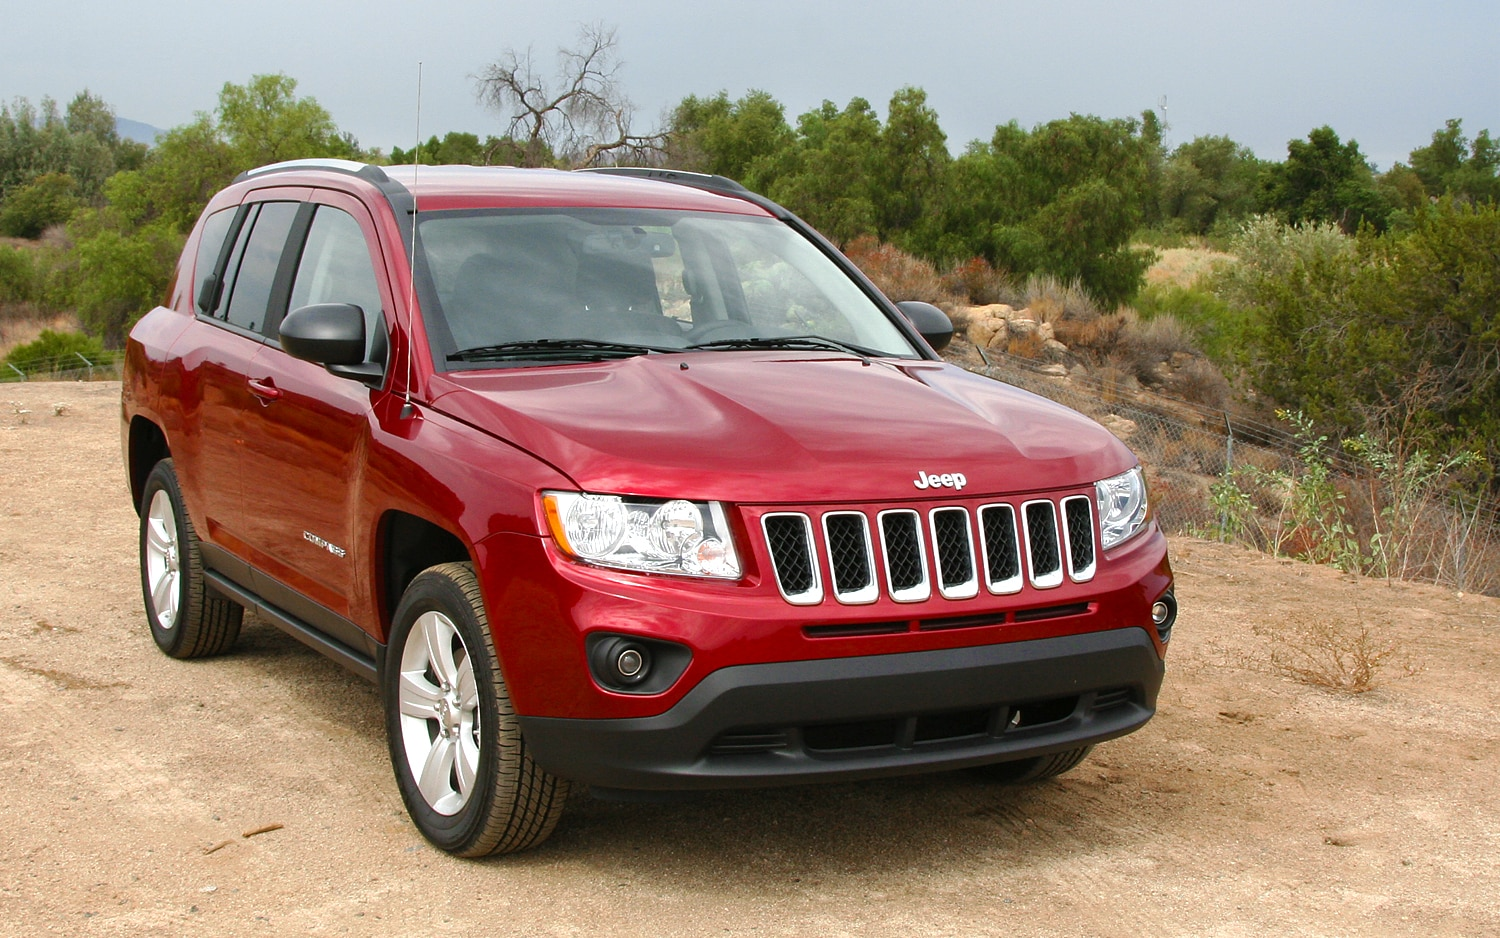 spied 2014 jeep compass patriot test mule. Black Bedroom Furniture Sets. Home Design Ideas